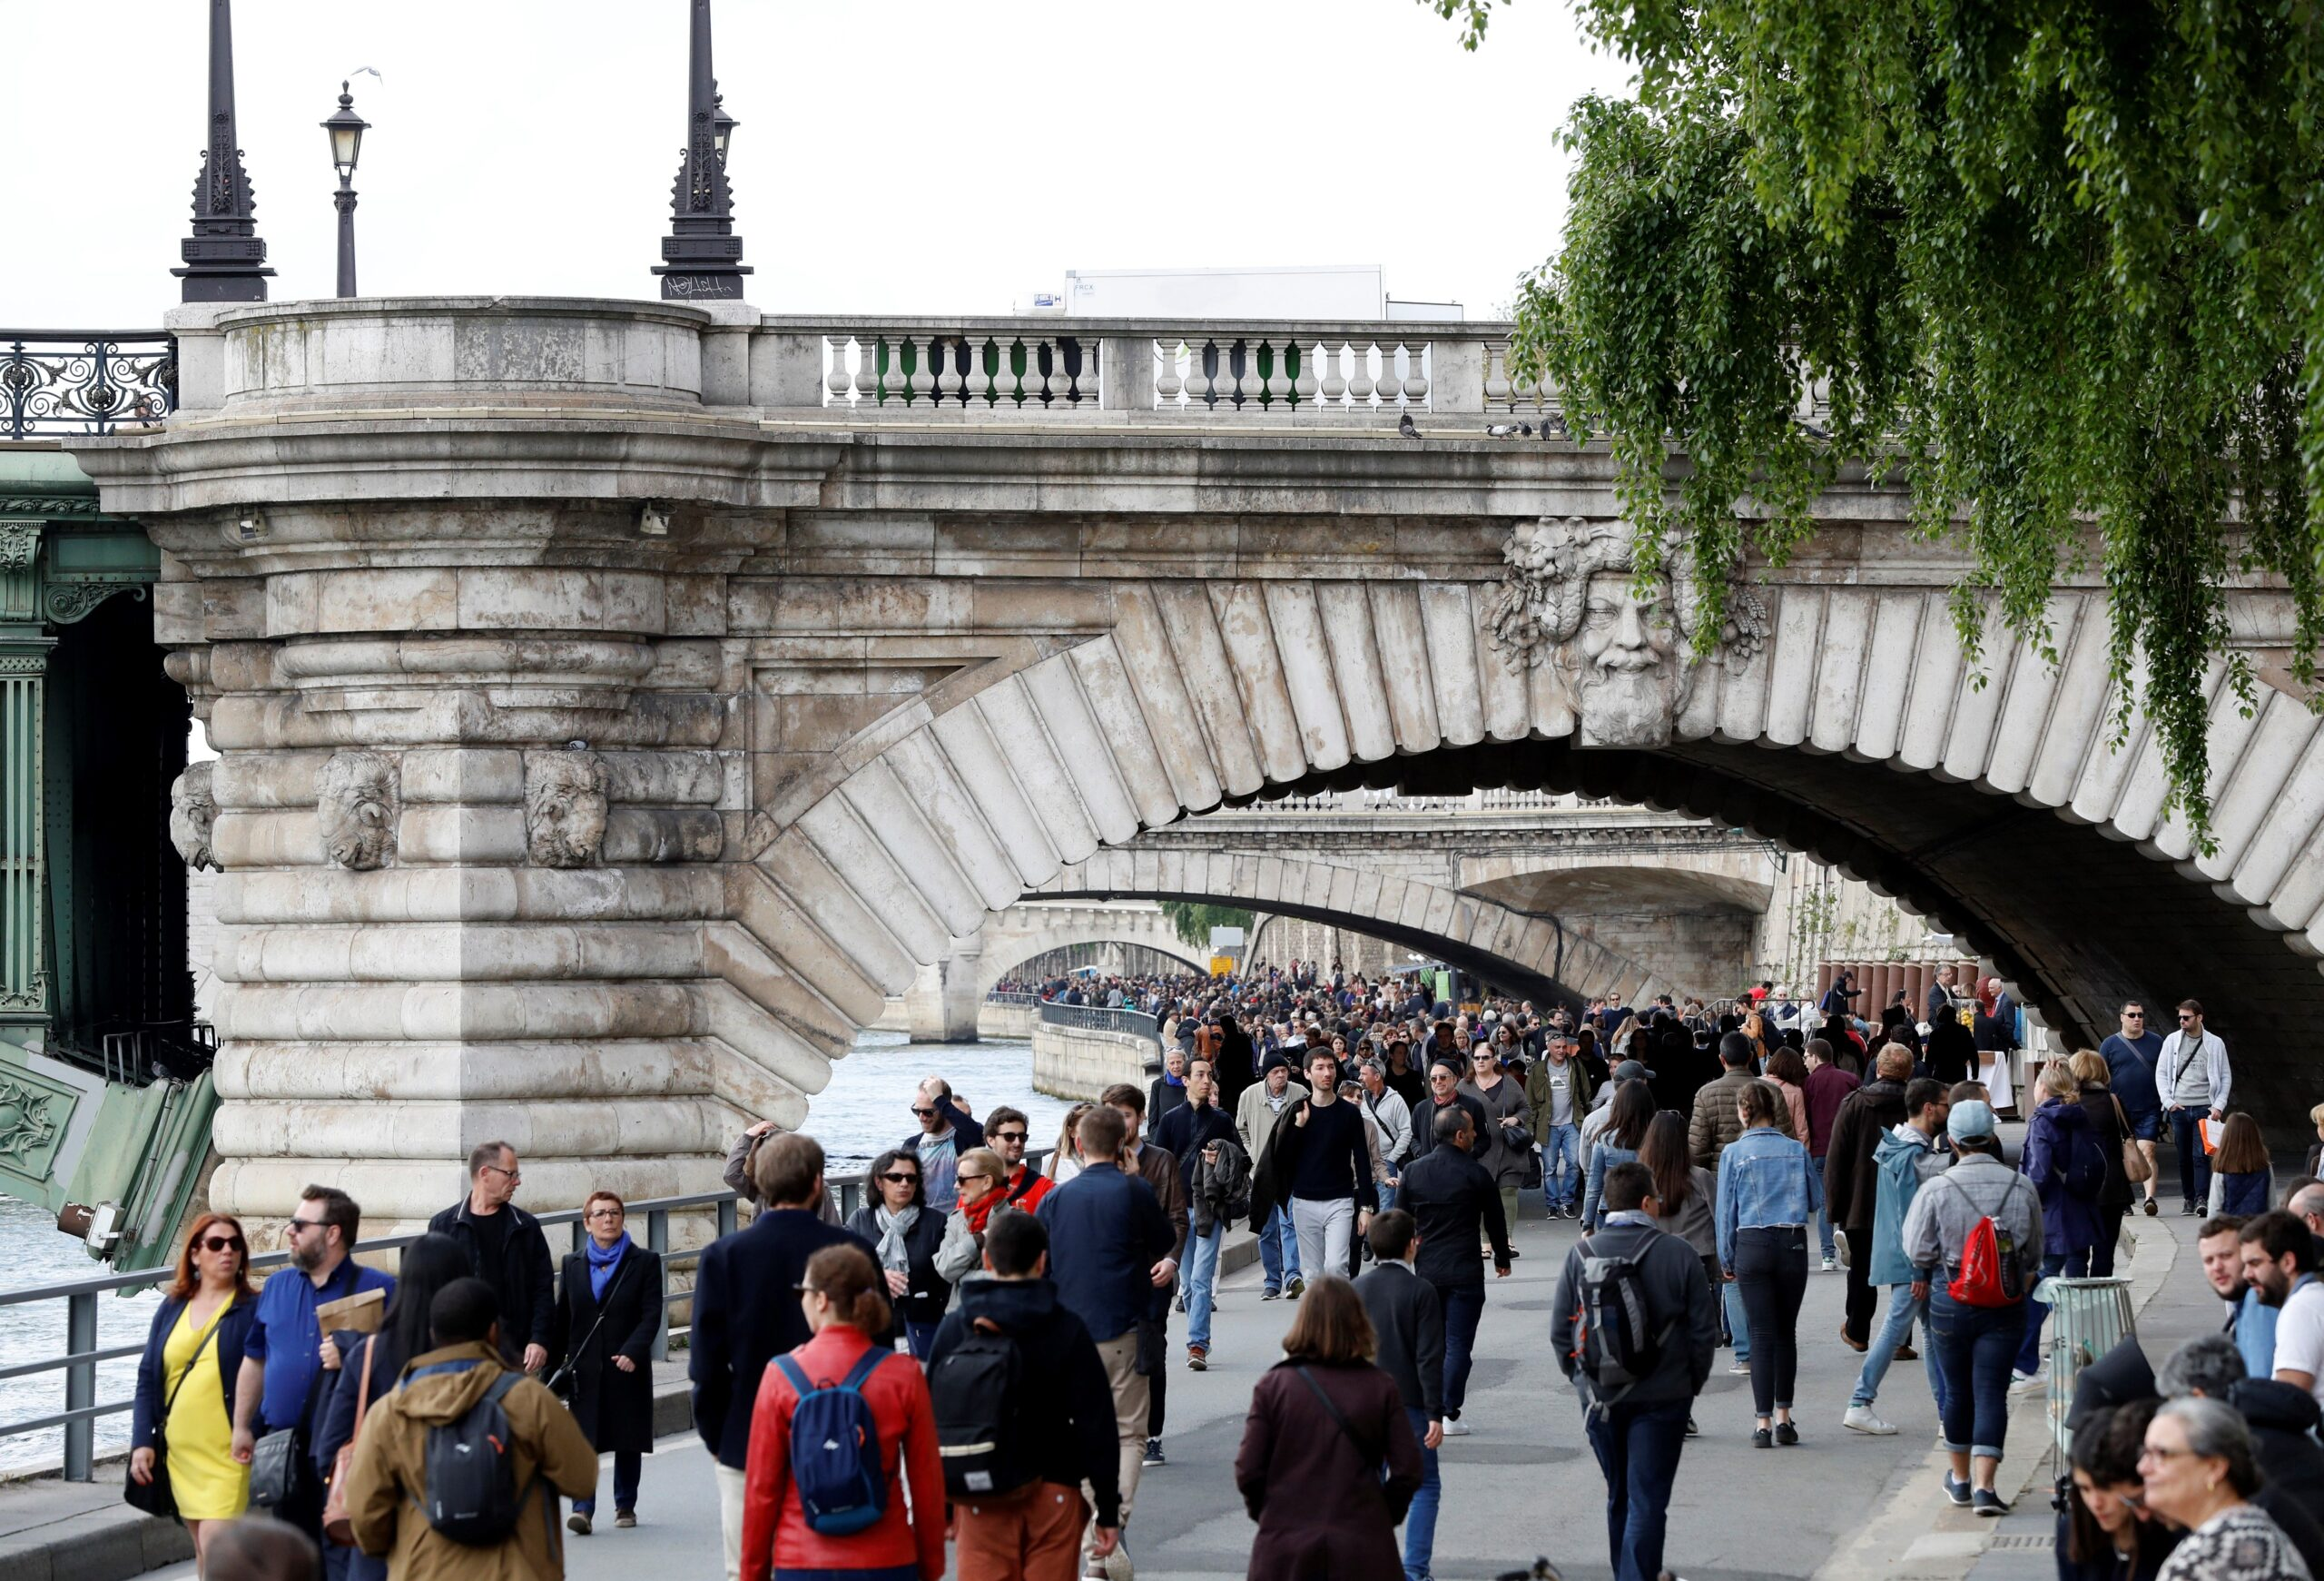 Many people walking along the bank of the River Seine in Paris, on a wide road with the stone arches of multiple bridges over the river in the foreground and distance.